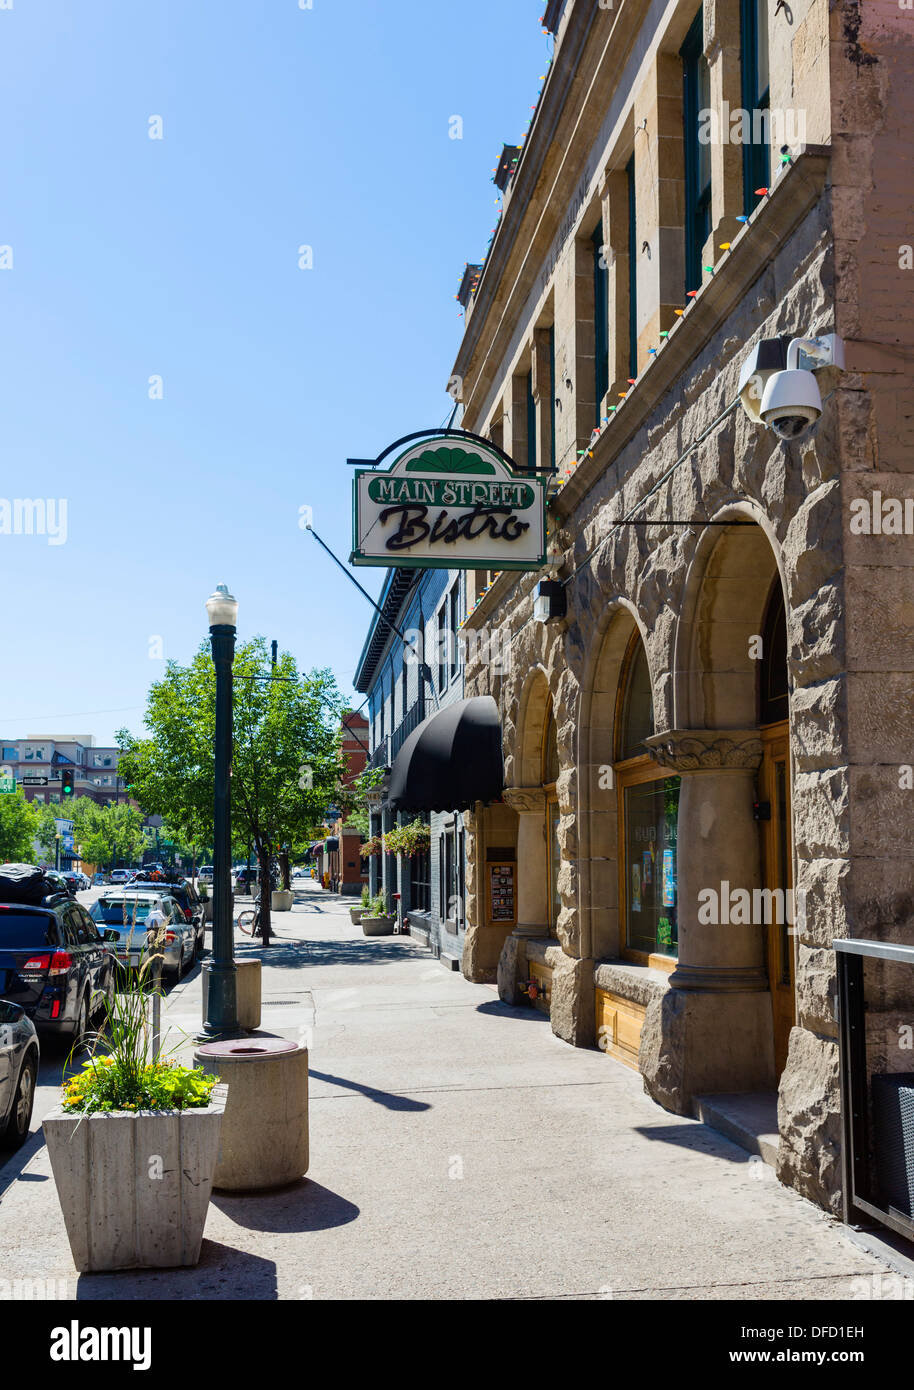 Shops and restaurants on West Main Street in historic downtown Boise, Idaho, USA - Stock Image